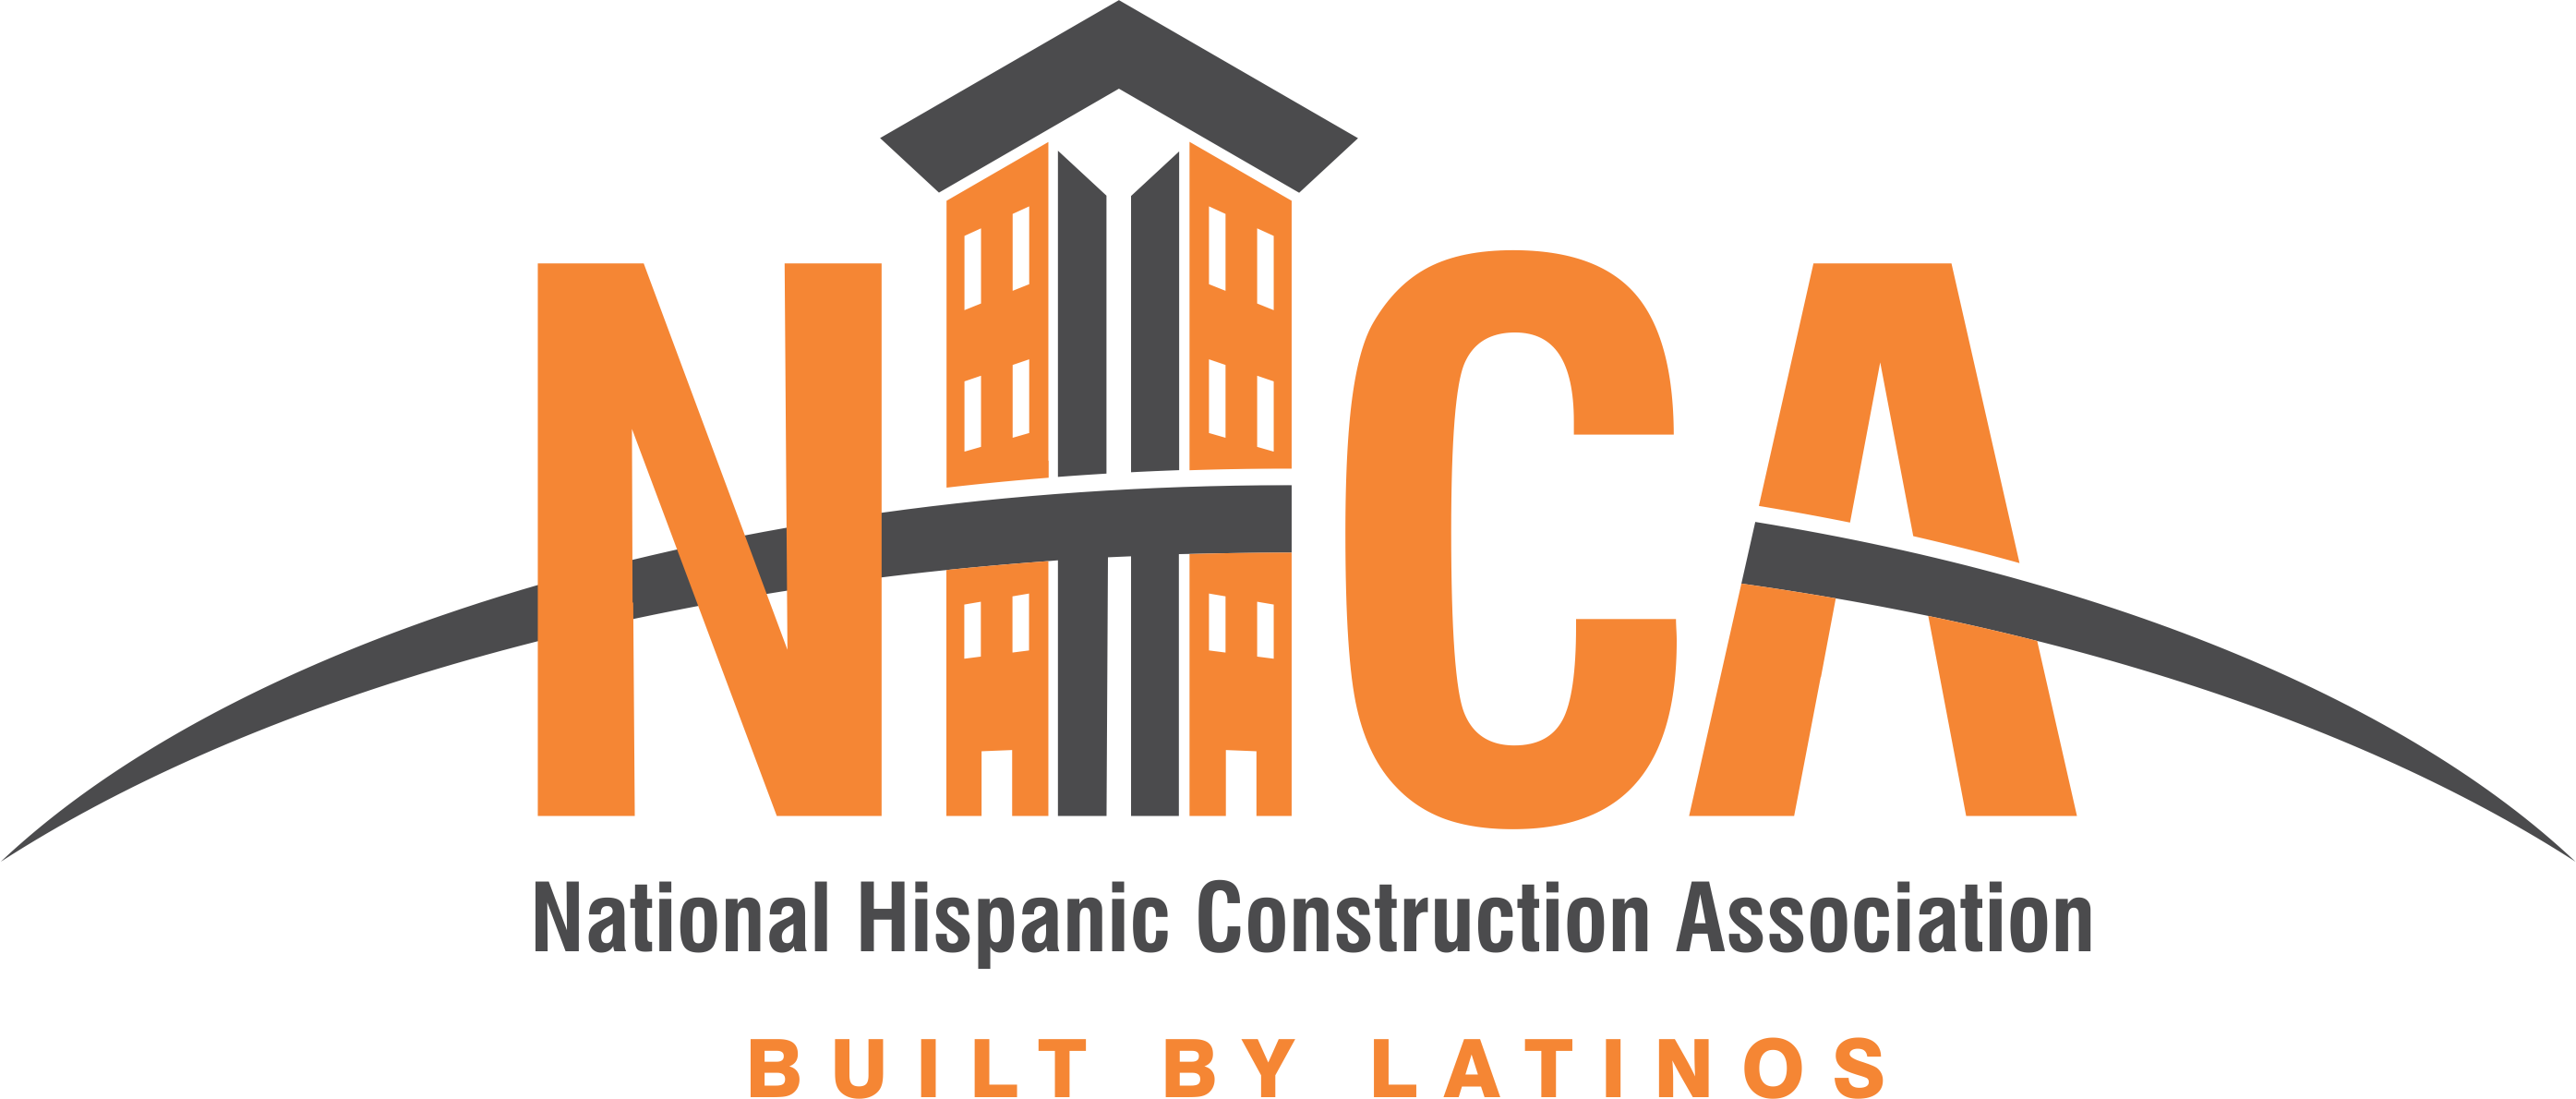 NHCA-national-hispanic-construction-assocation-logo